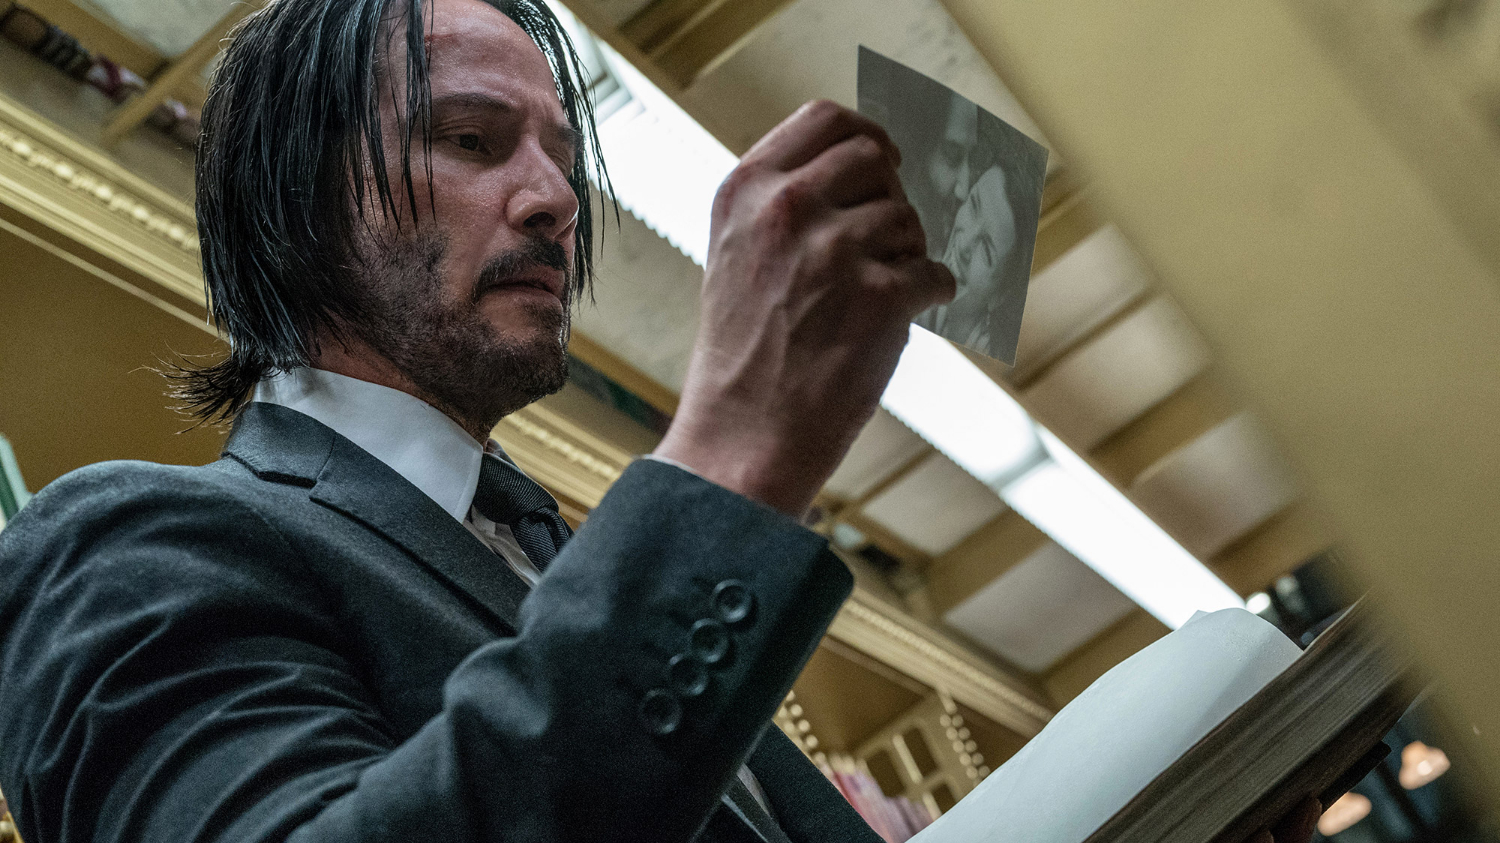 John Wick 3 - Parabellum: Everything You Need to Know Before